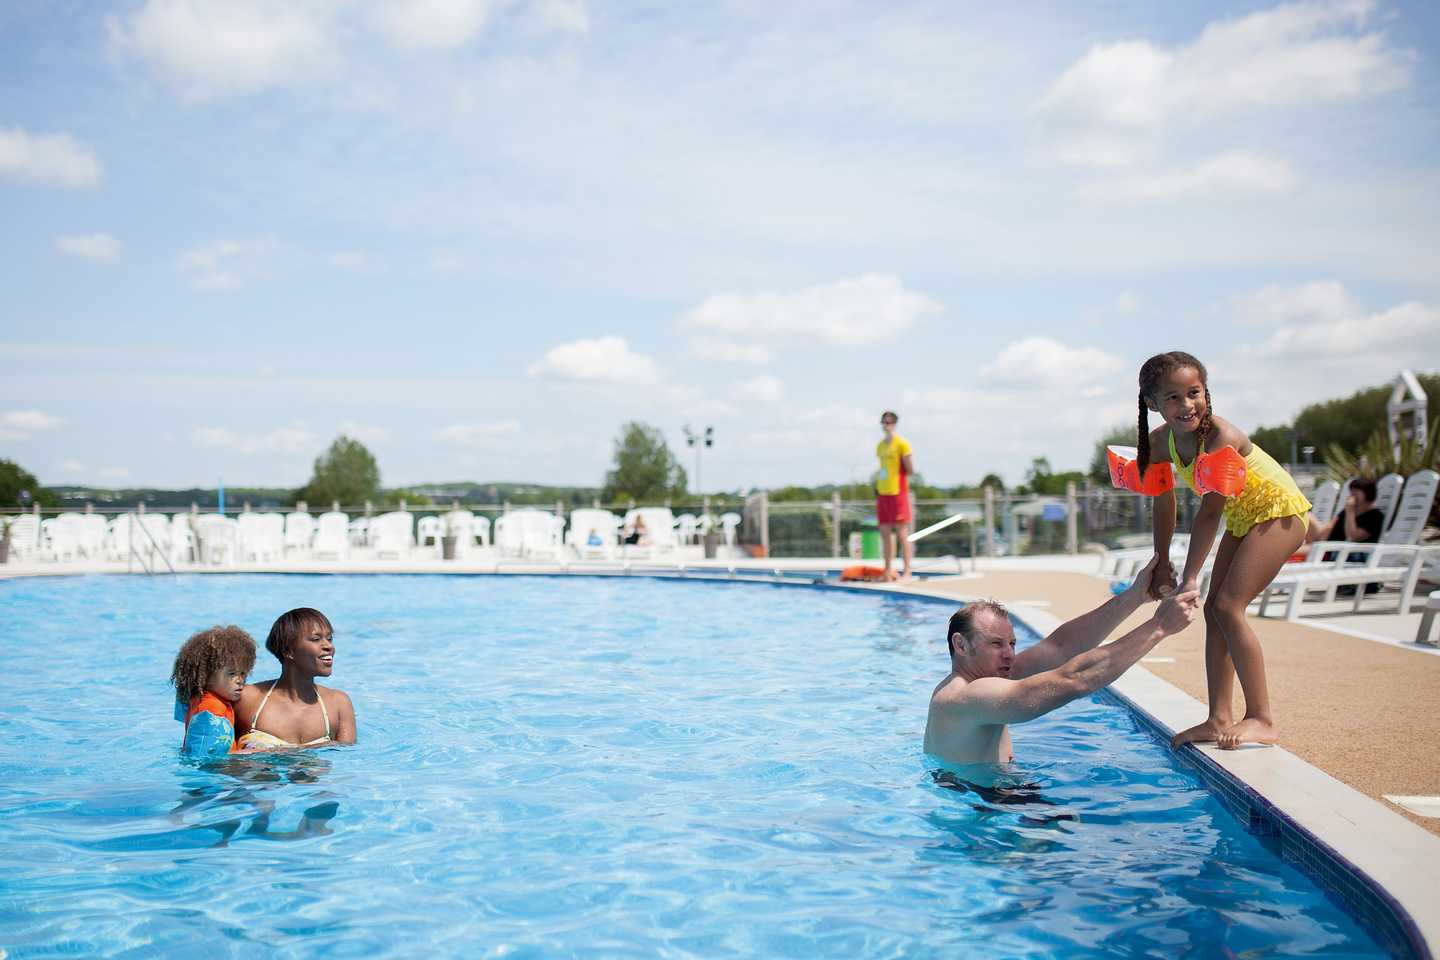 Guests in the outdoor pool